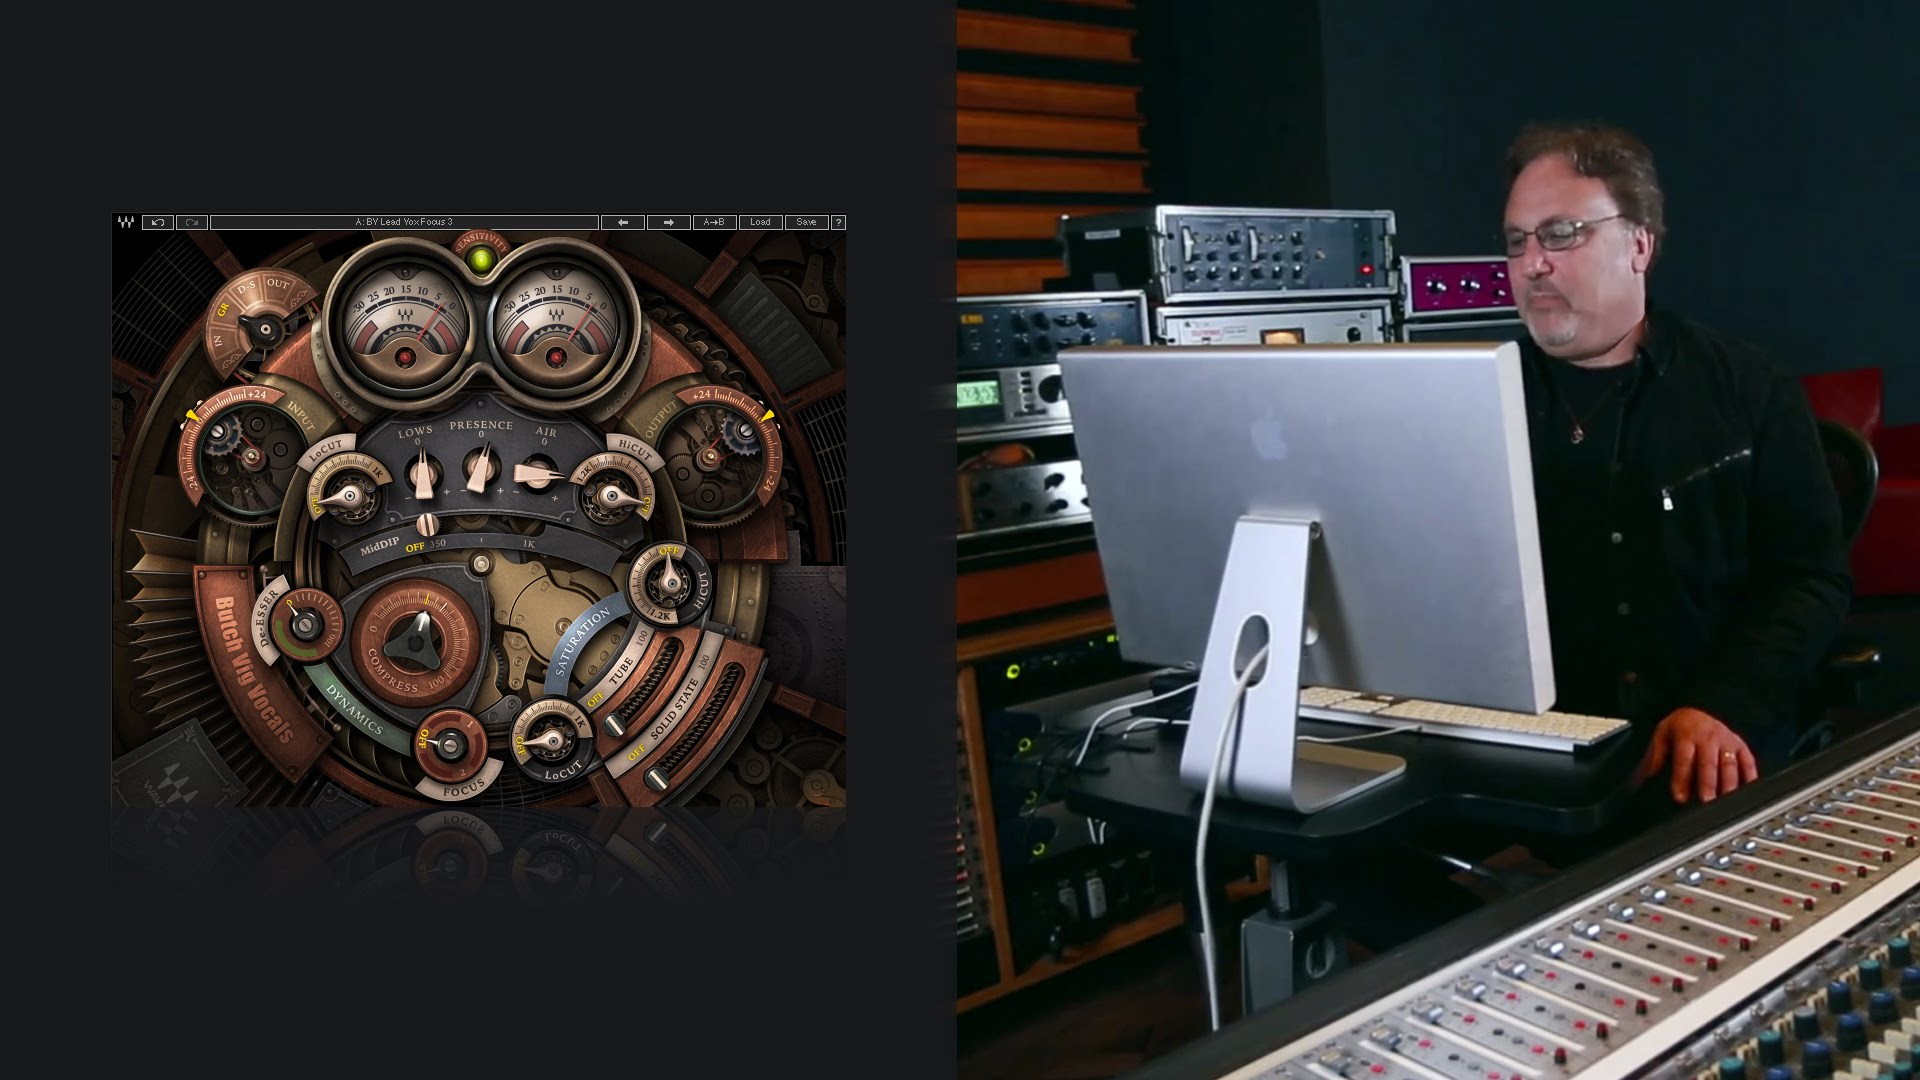 Tutorial: Mixing Rock Vocals with the Waves Butch Vig Vocals Plug-in